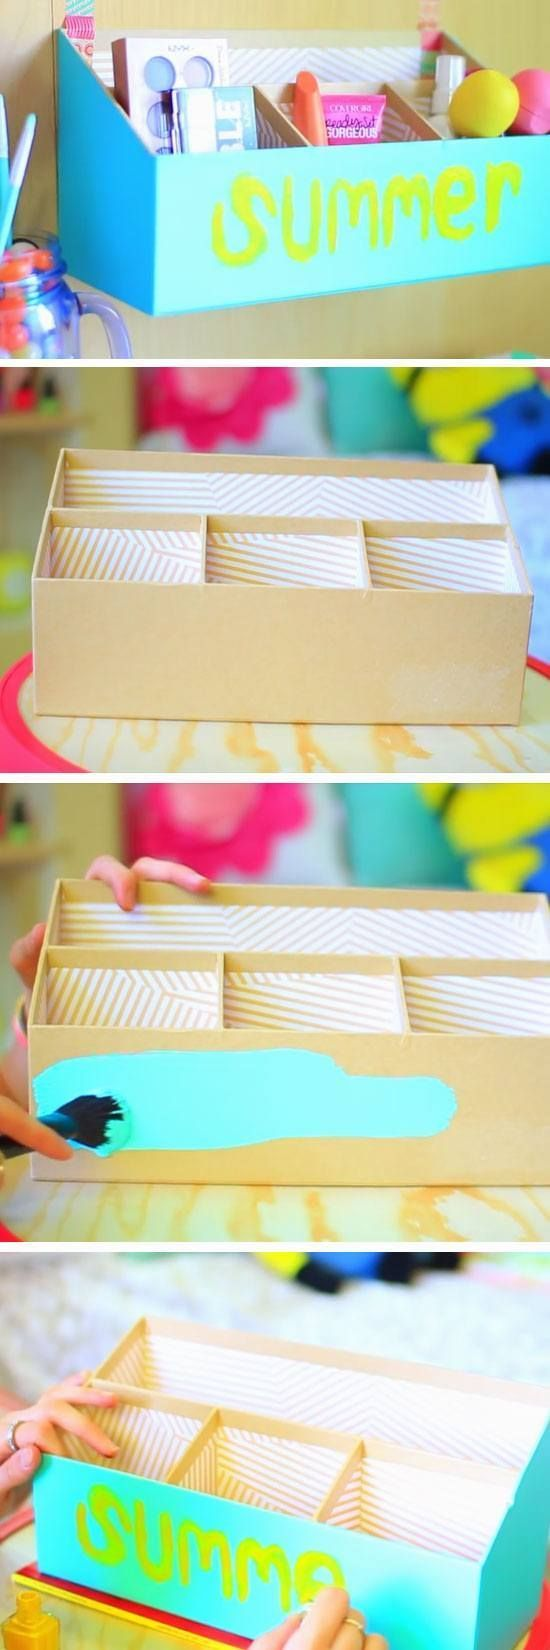 Cute diy room decor pinterest cute summer box   diy summer tumblr room decor ideas that are